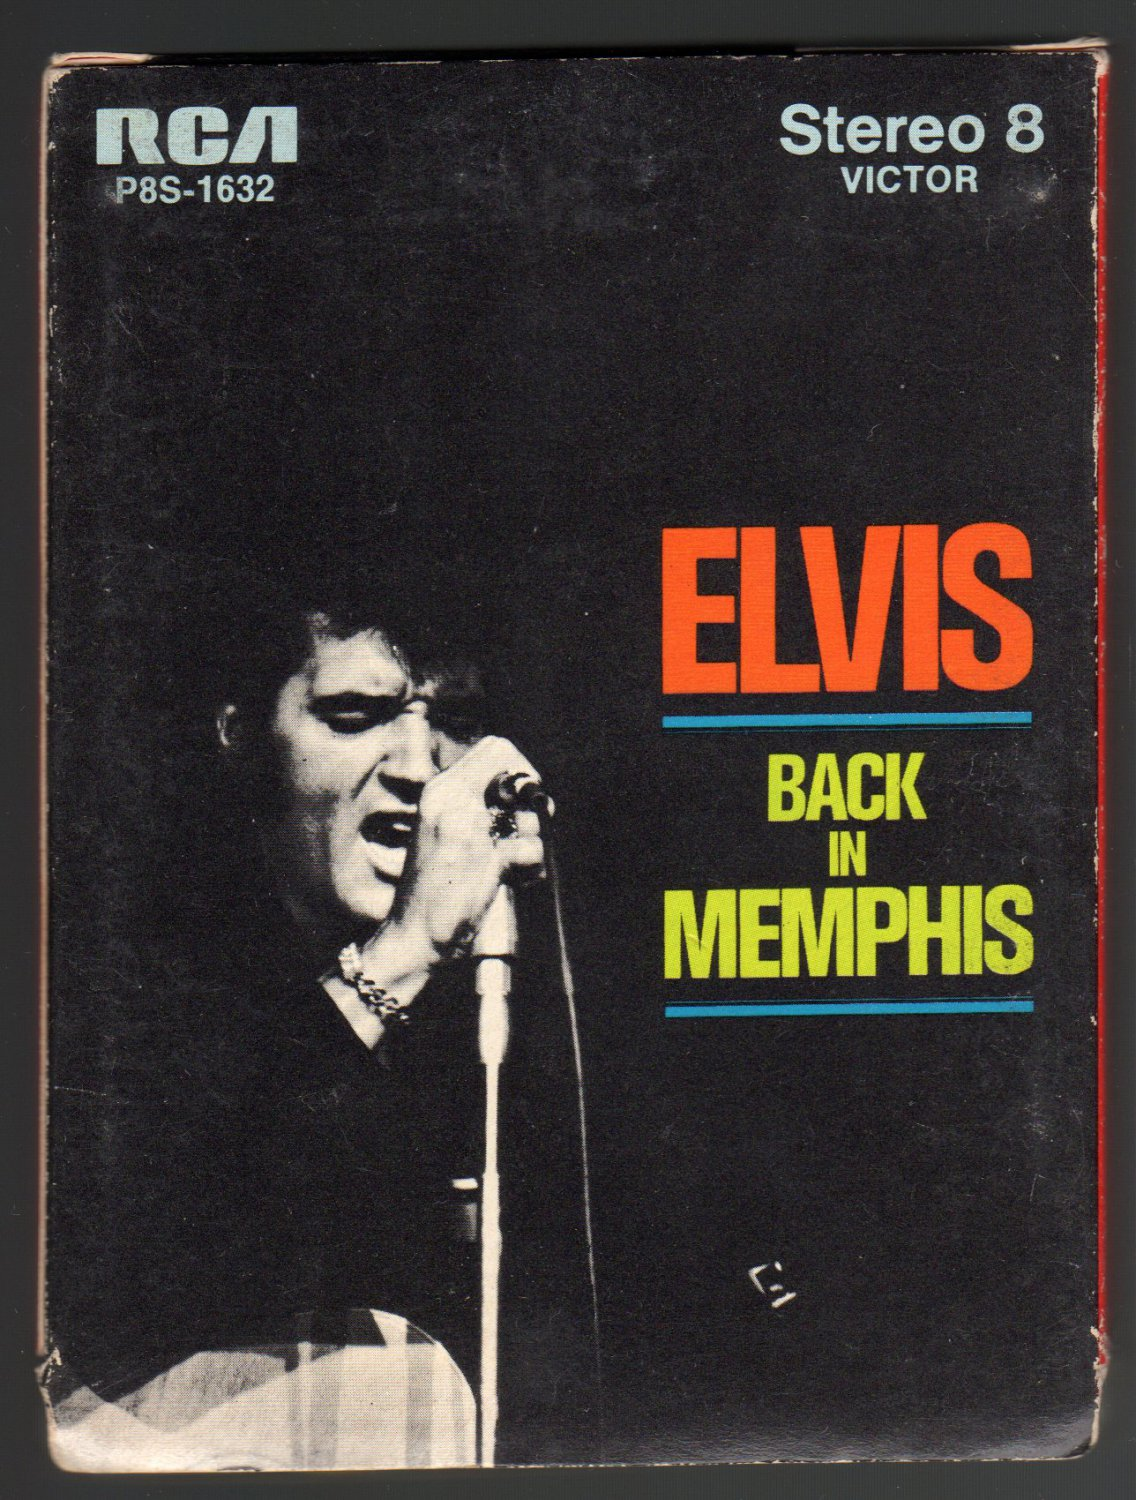 Elvis Presley - Back In Memphis 1970 RCA A4 8-TRACK TAPE